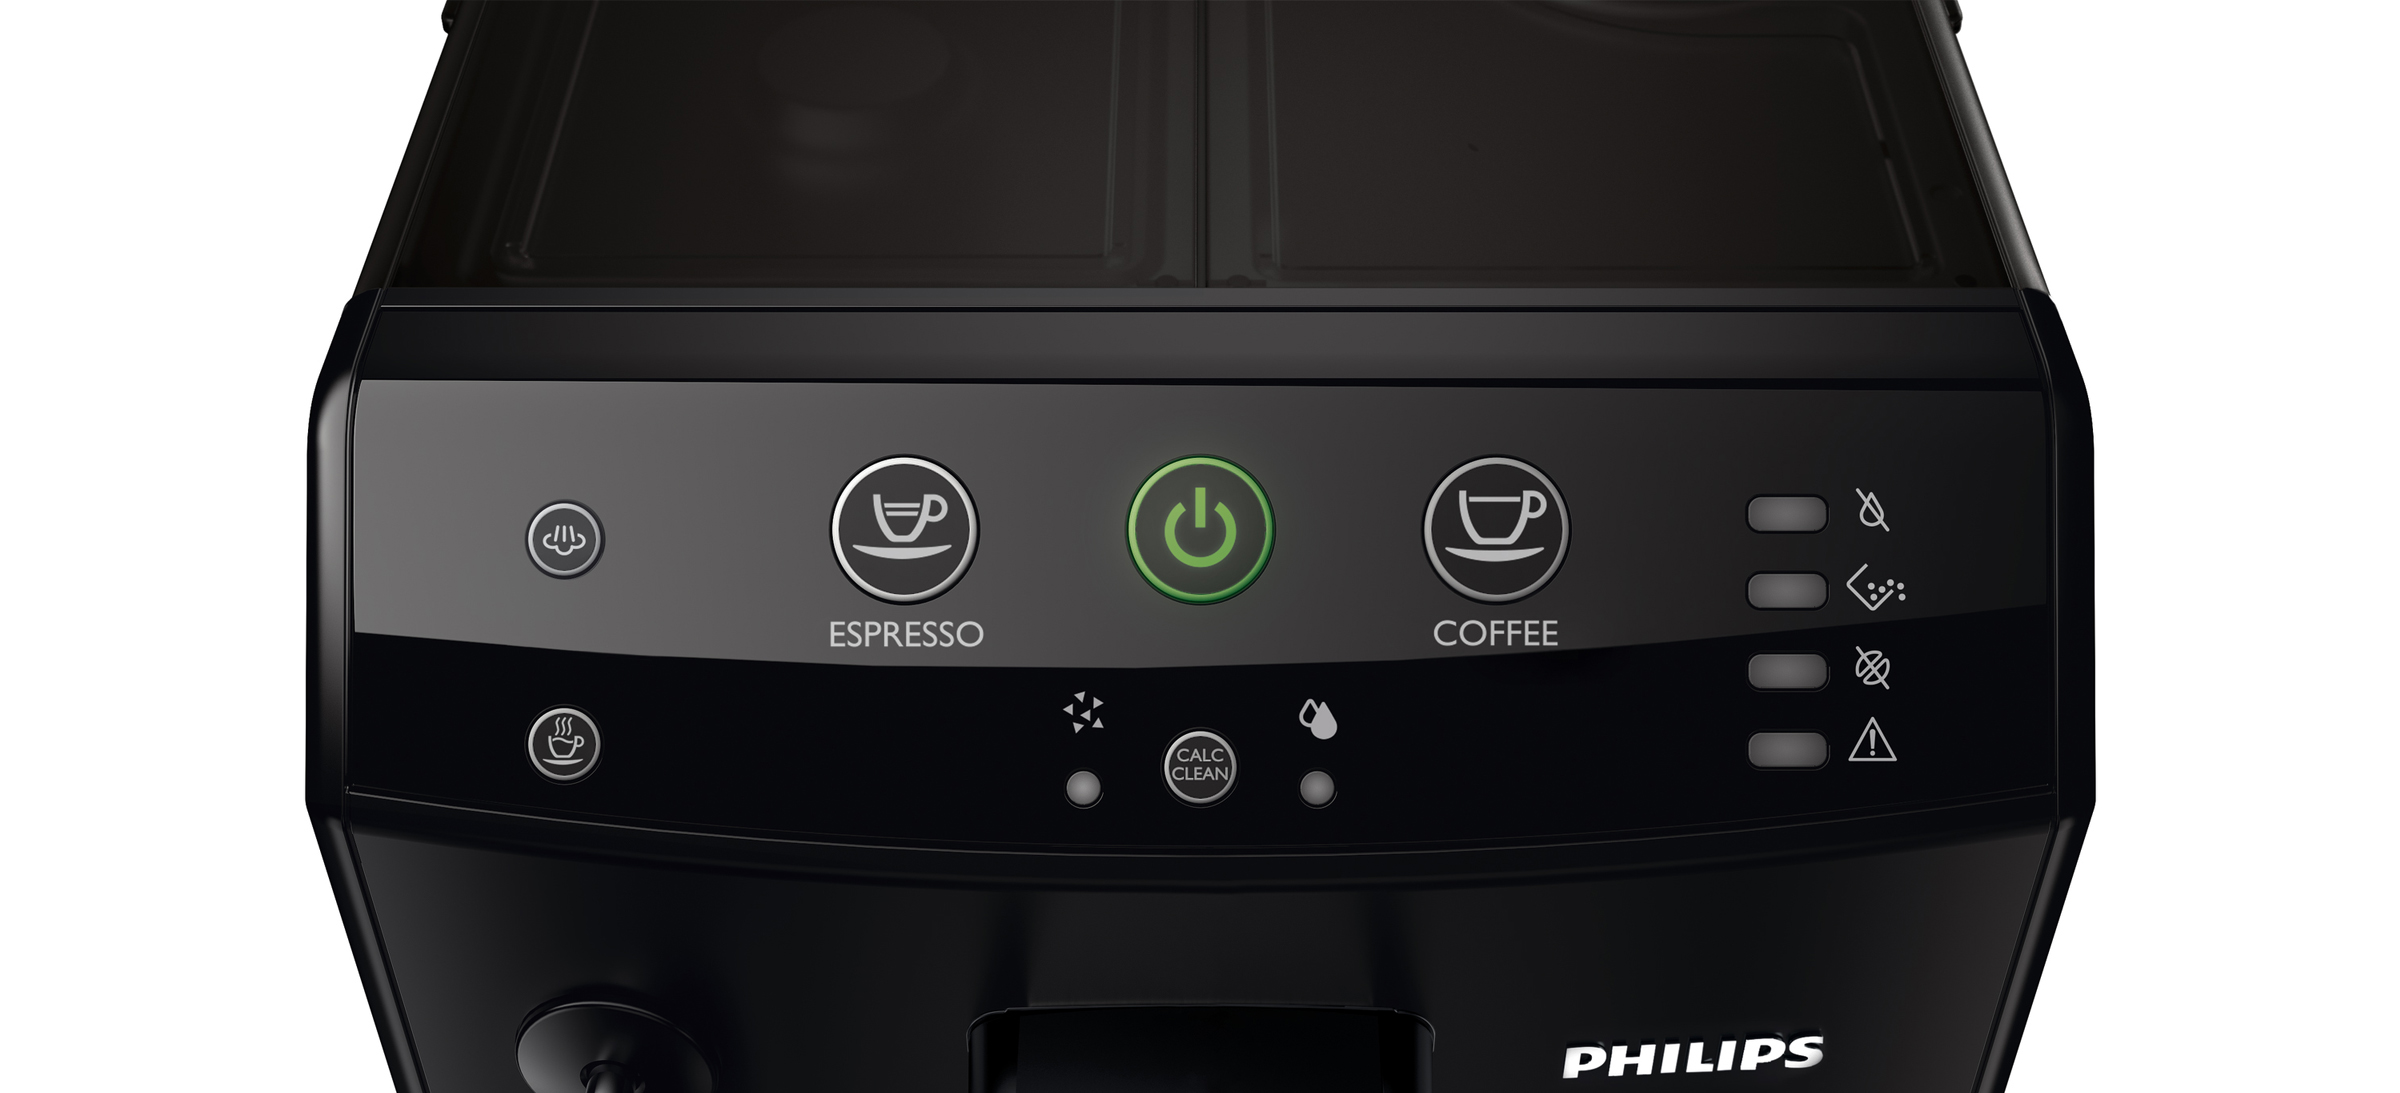 Paneel Philips espressomachine HD8821/01